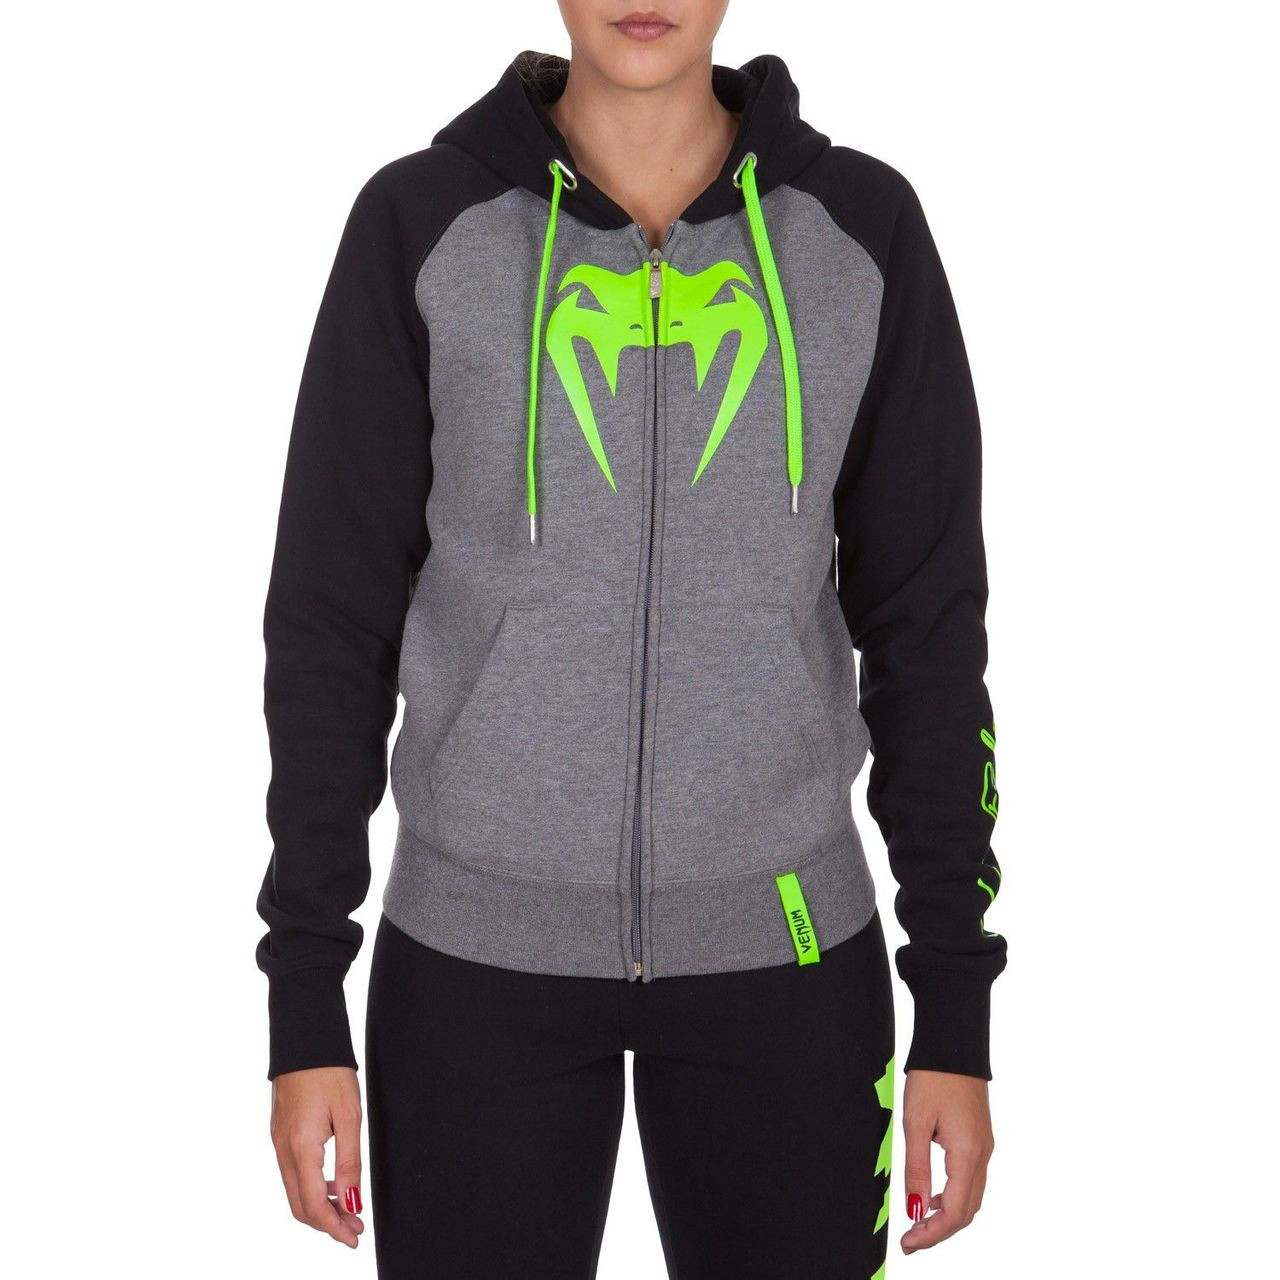 Venum Infinity Hoody designed for women.  Available at www.thejiujitsushop.com  Order now for free shipping across the store!